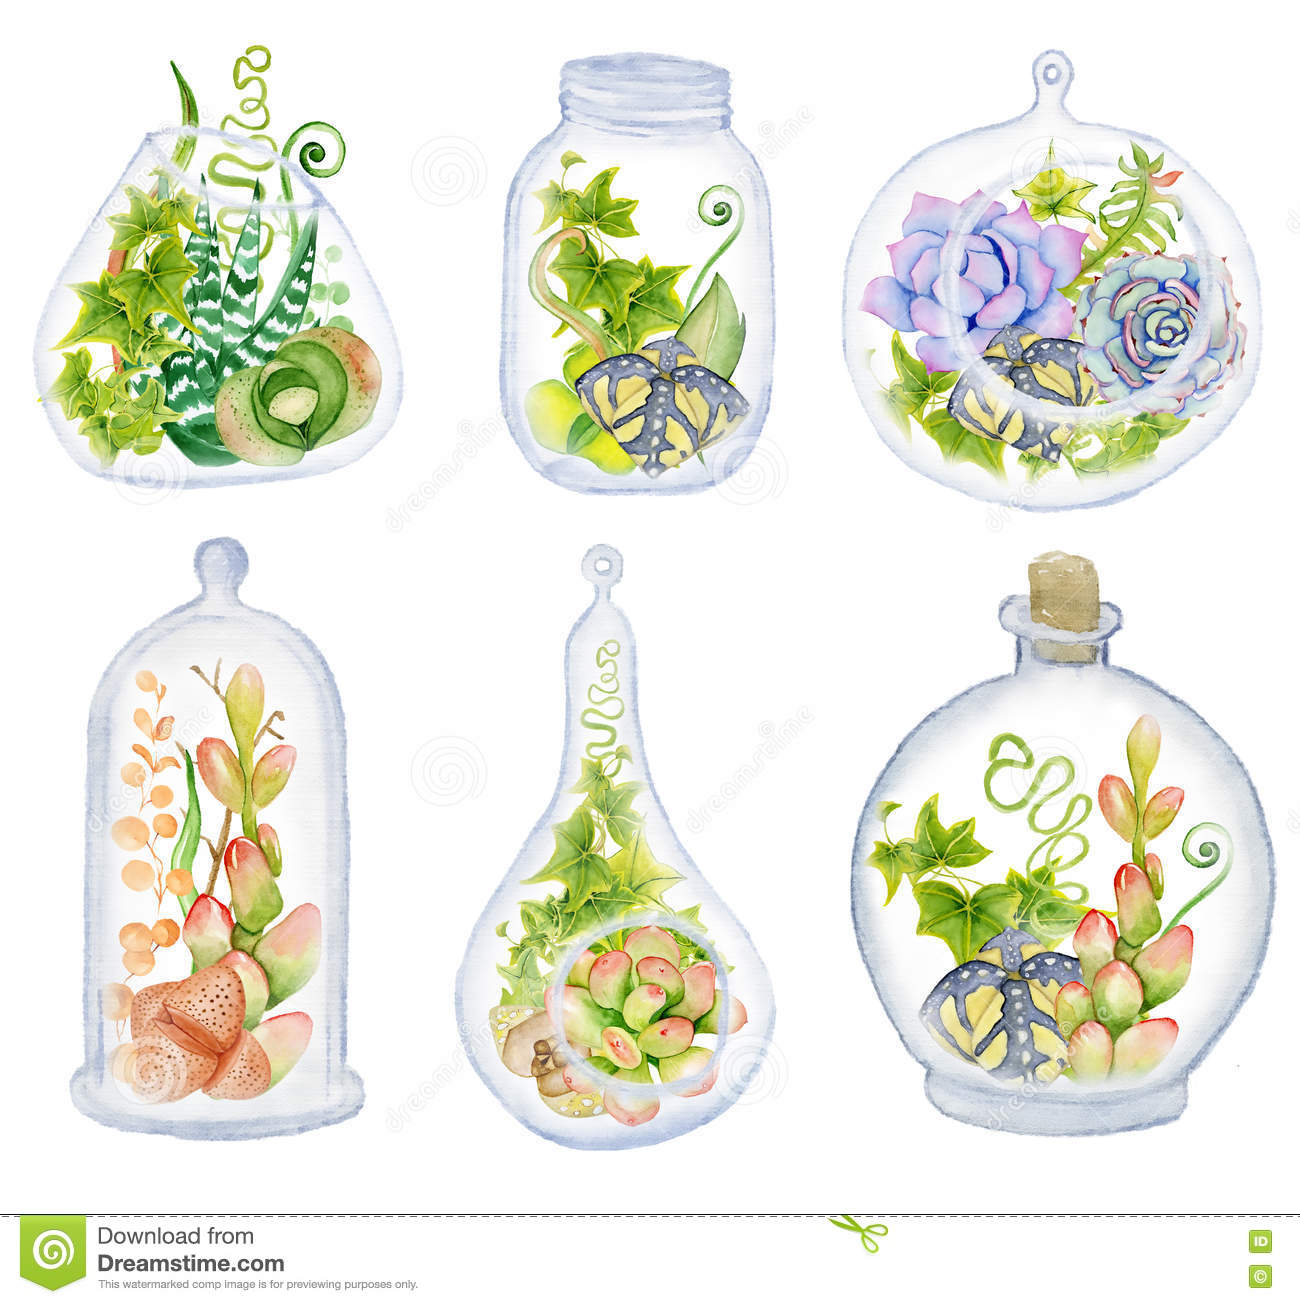 Cactus And Succulent Set With Glass Terrarium Stock Illustration Illustration Of Glass Green 81218184